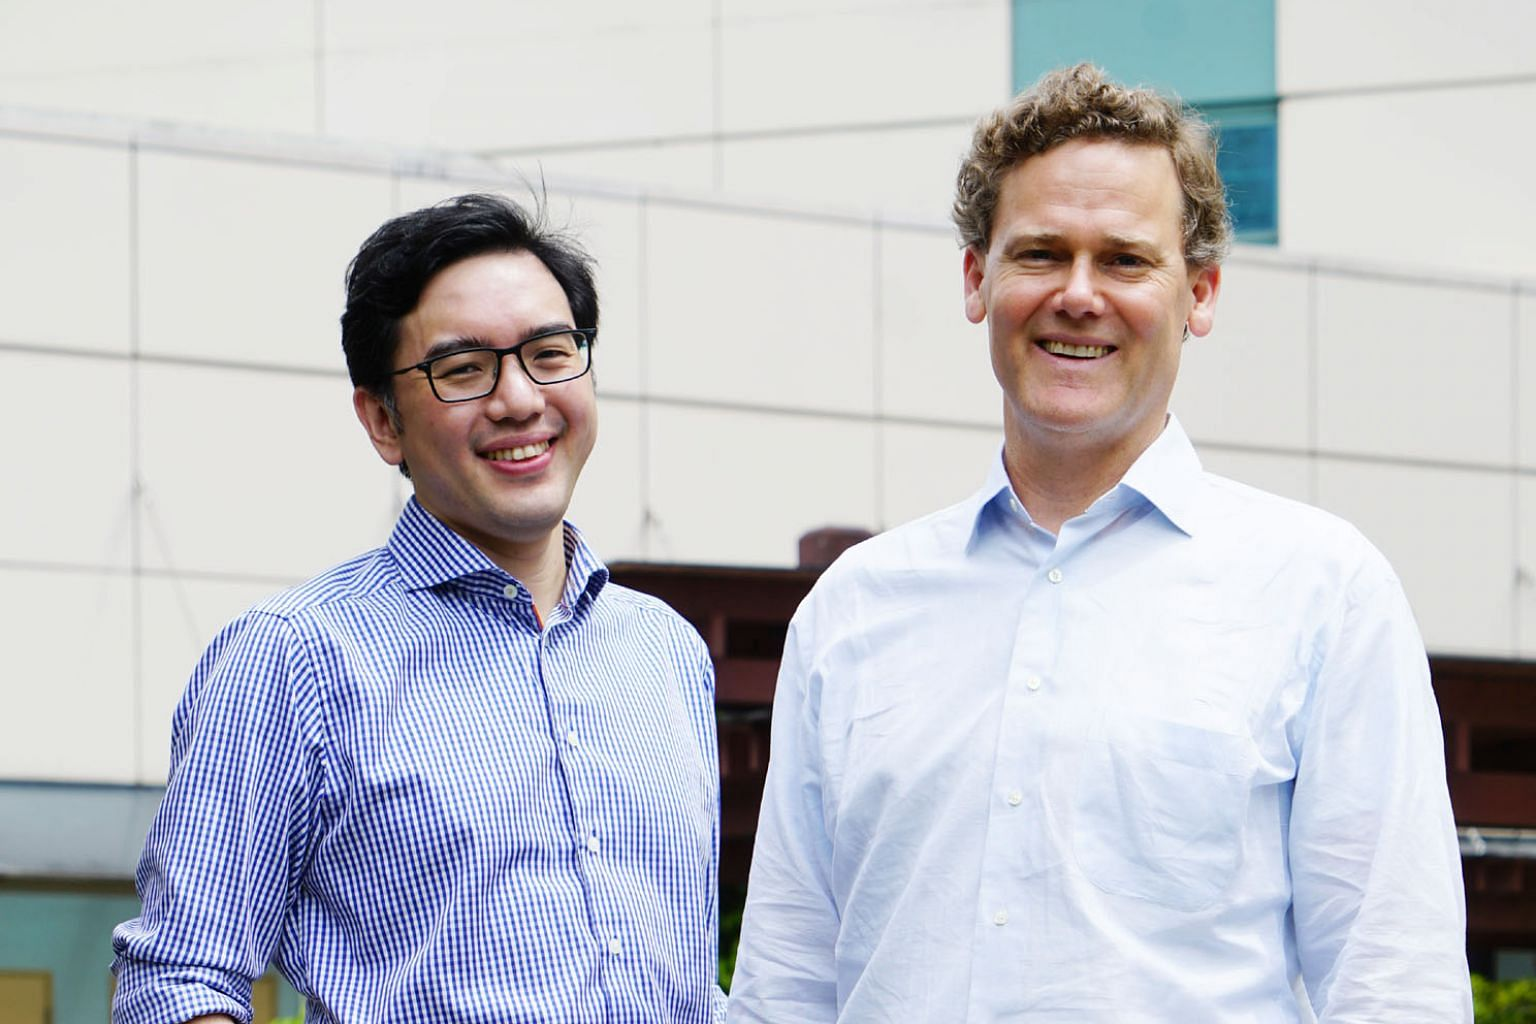 Assistant Professor Nicolas Kon from the National Neuroscience Institute and Associate Professor Michael Lucas James from Duke University School of Medicine are the lead researchers in the trials.